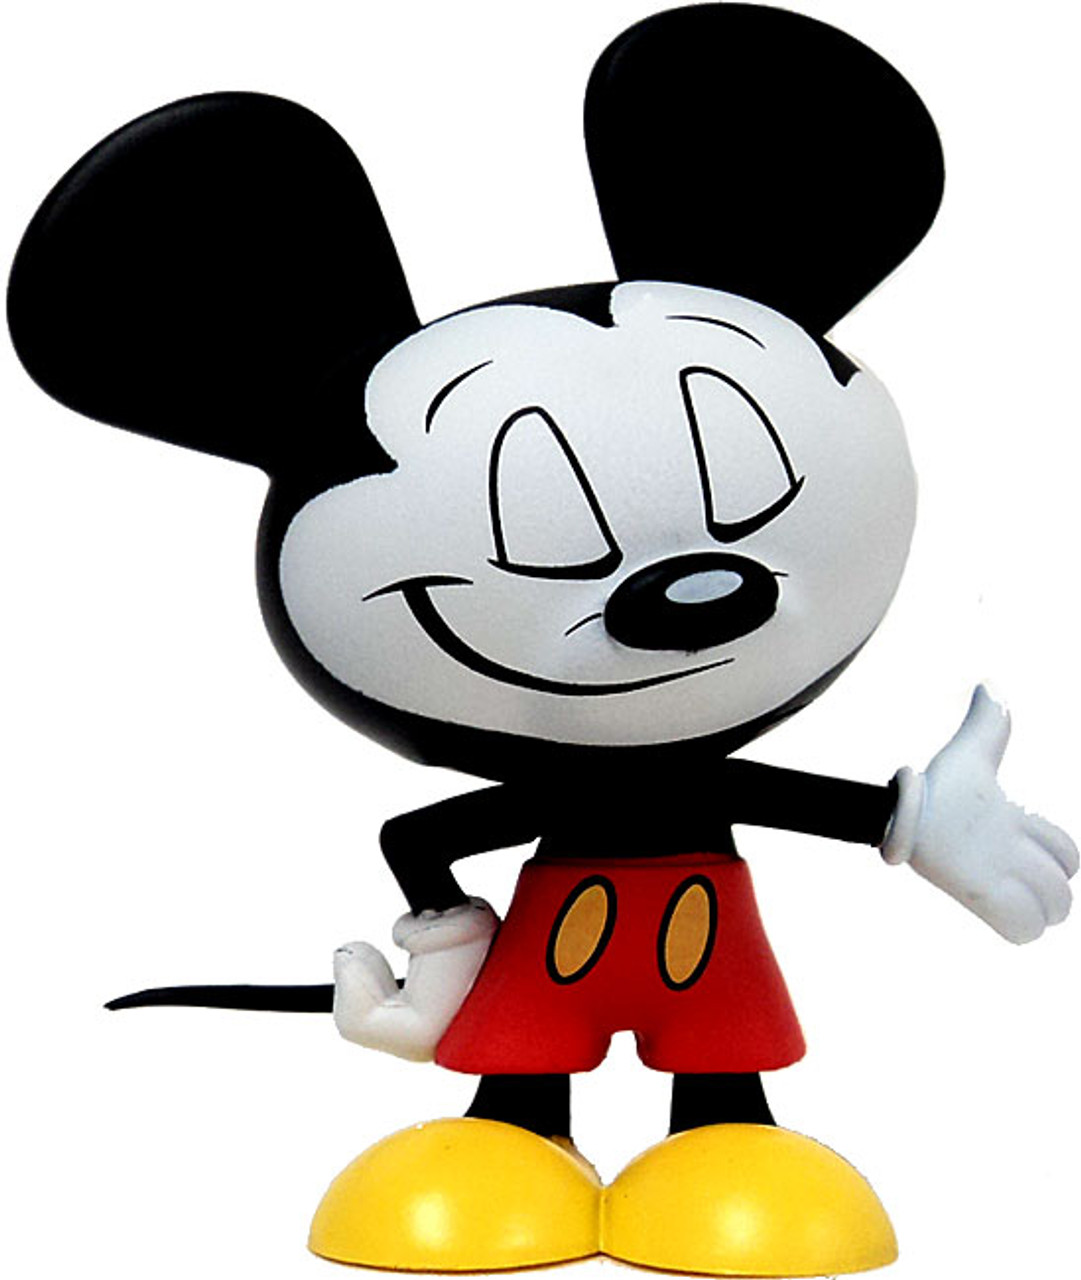 Funko Disney Mystery Minis Series 1 Mickey Mouse Vinyl Mini Figure [Eyes Closed, Hand Out Loose]